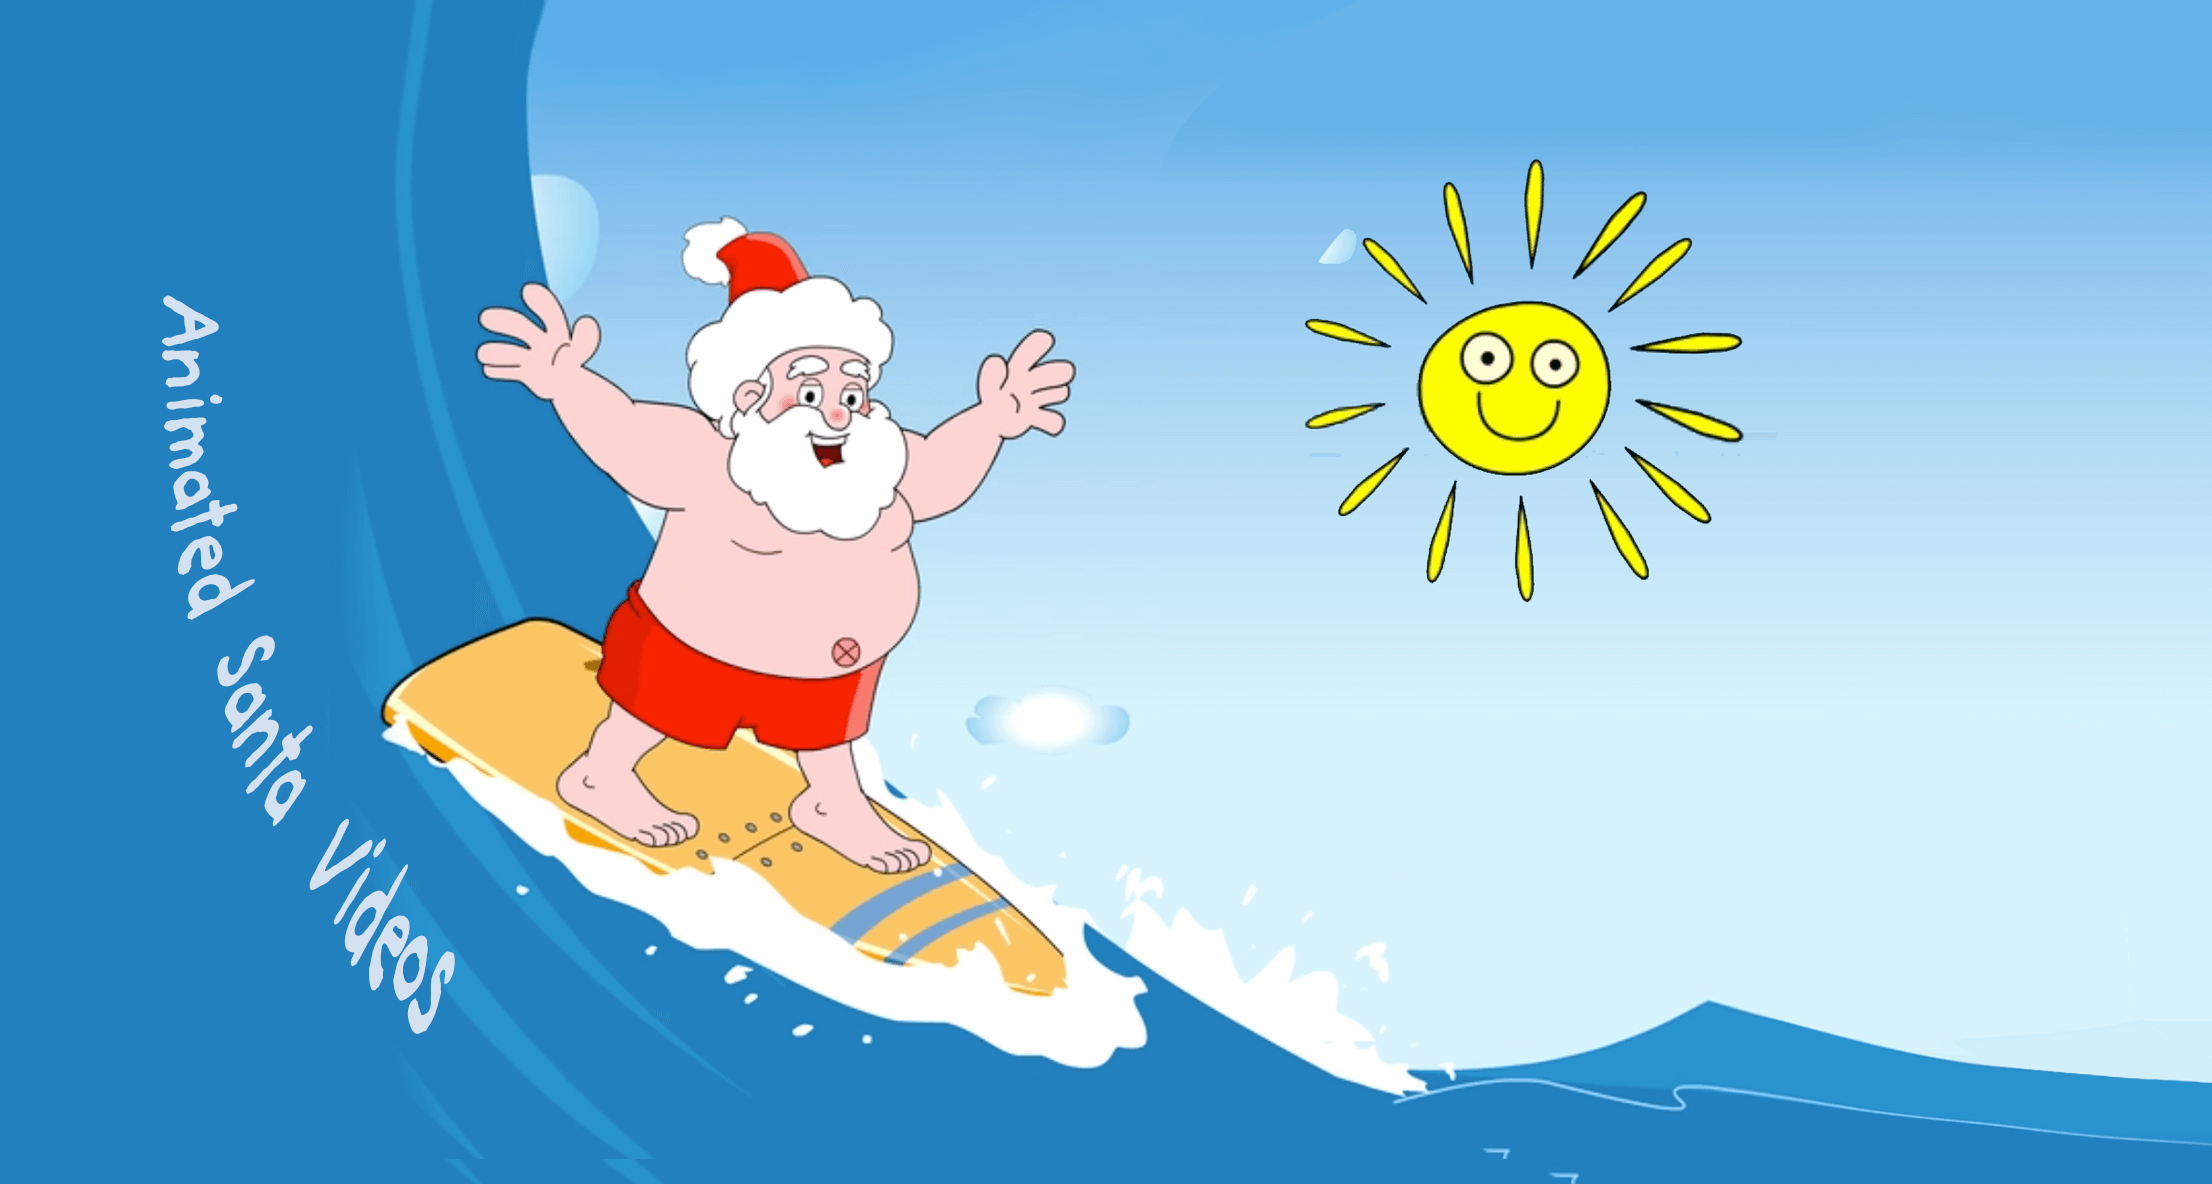 Santa.net Santa Claus Surfing Animation